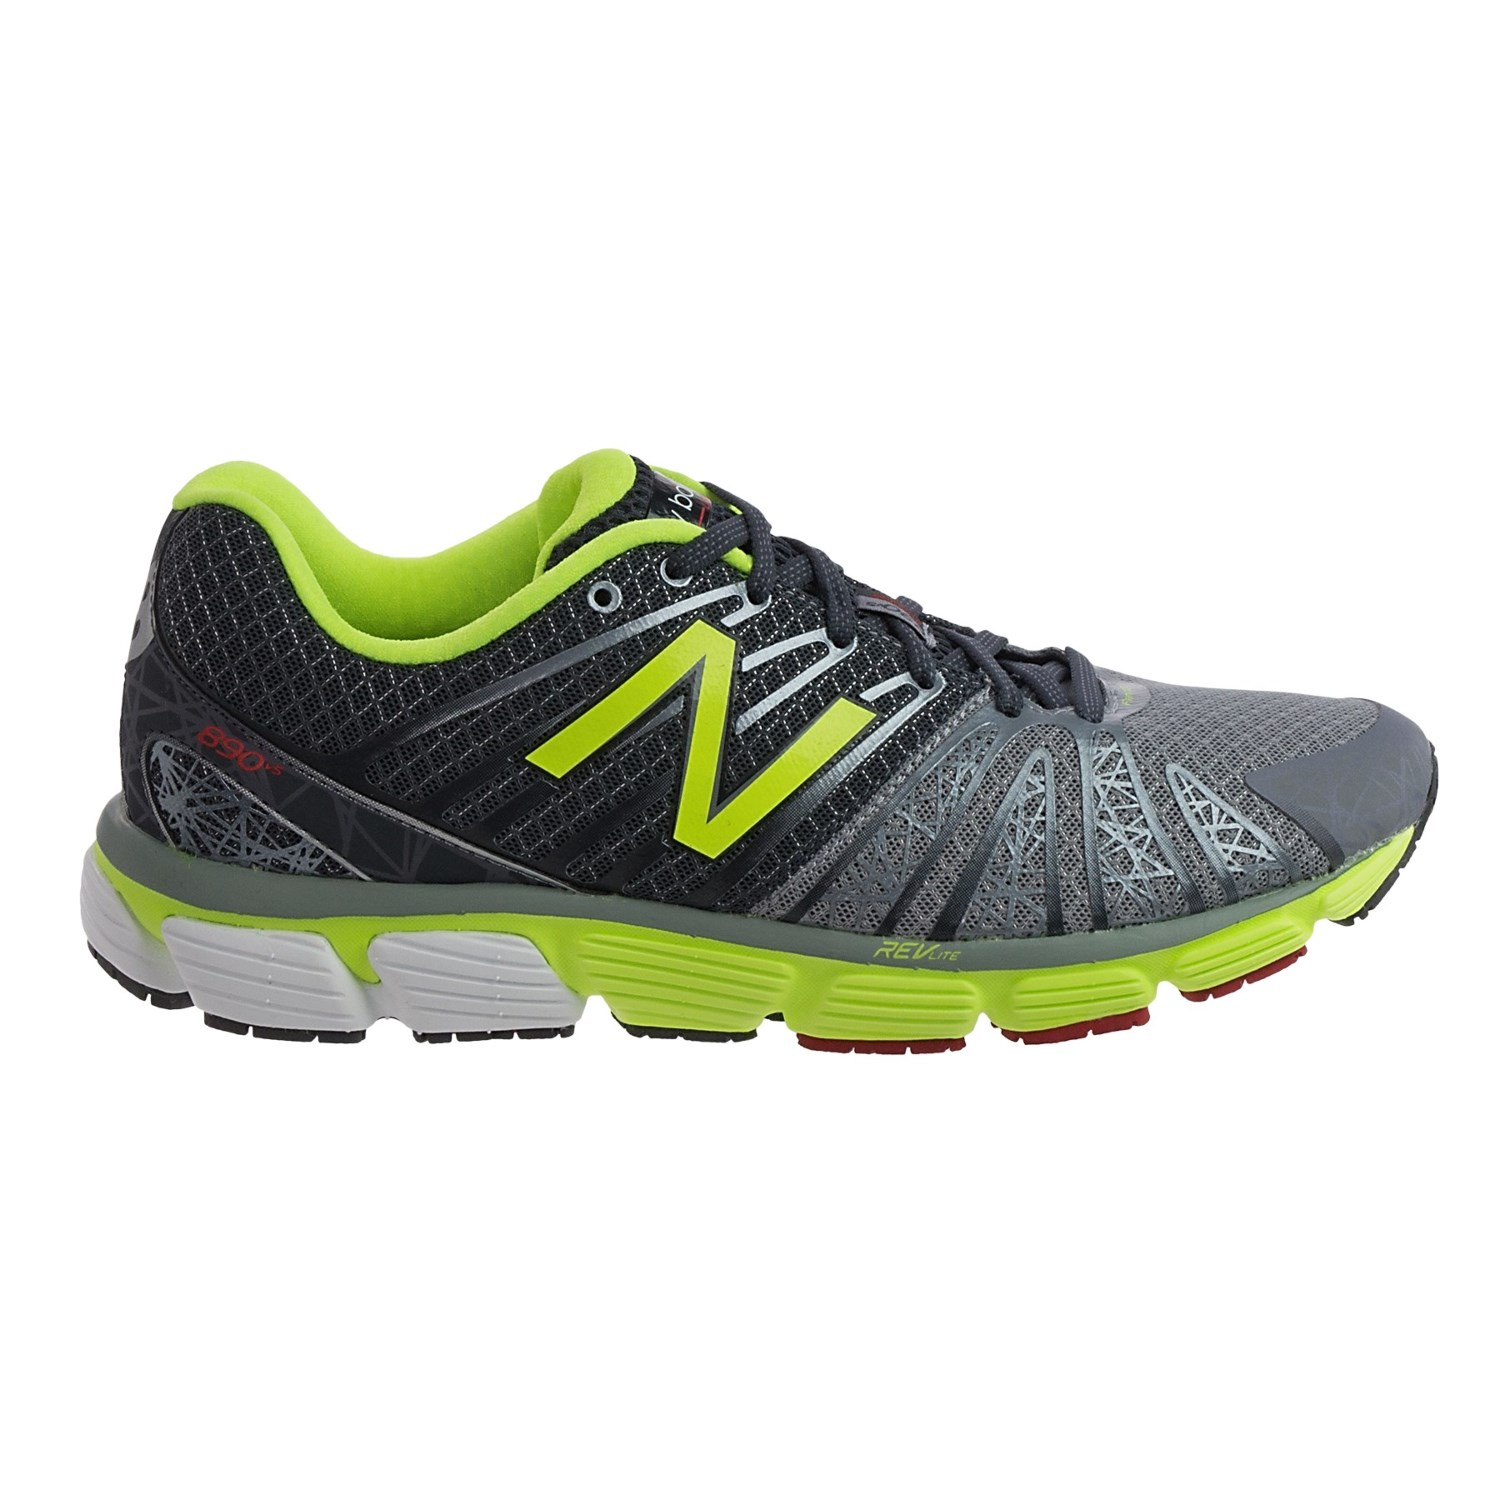 new balance 890v5 running shoes for men save 39. Black Bedroom Furniture Sets. Home Design Ideas